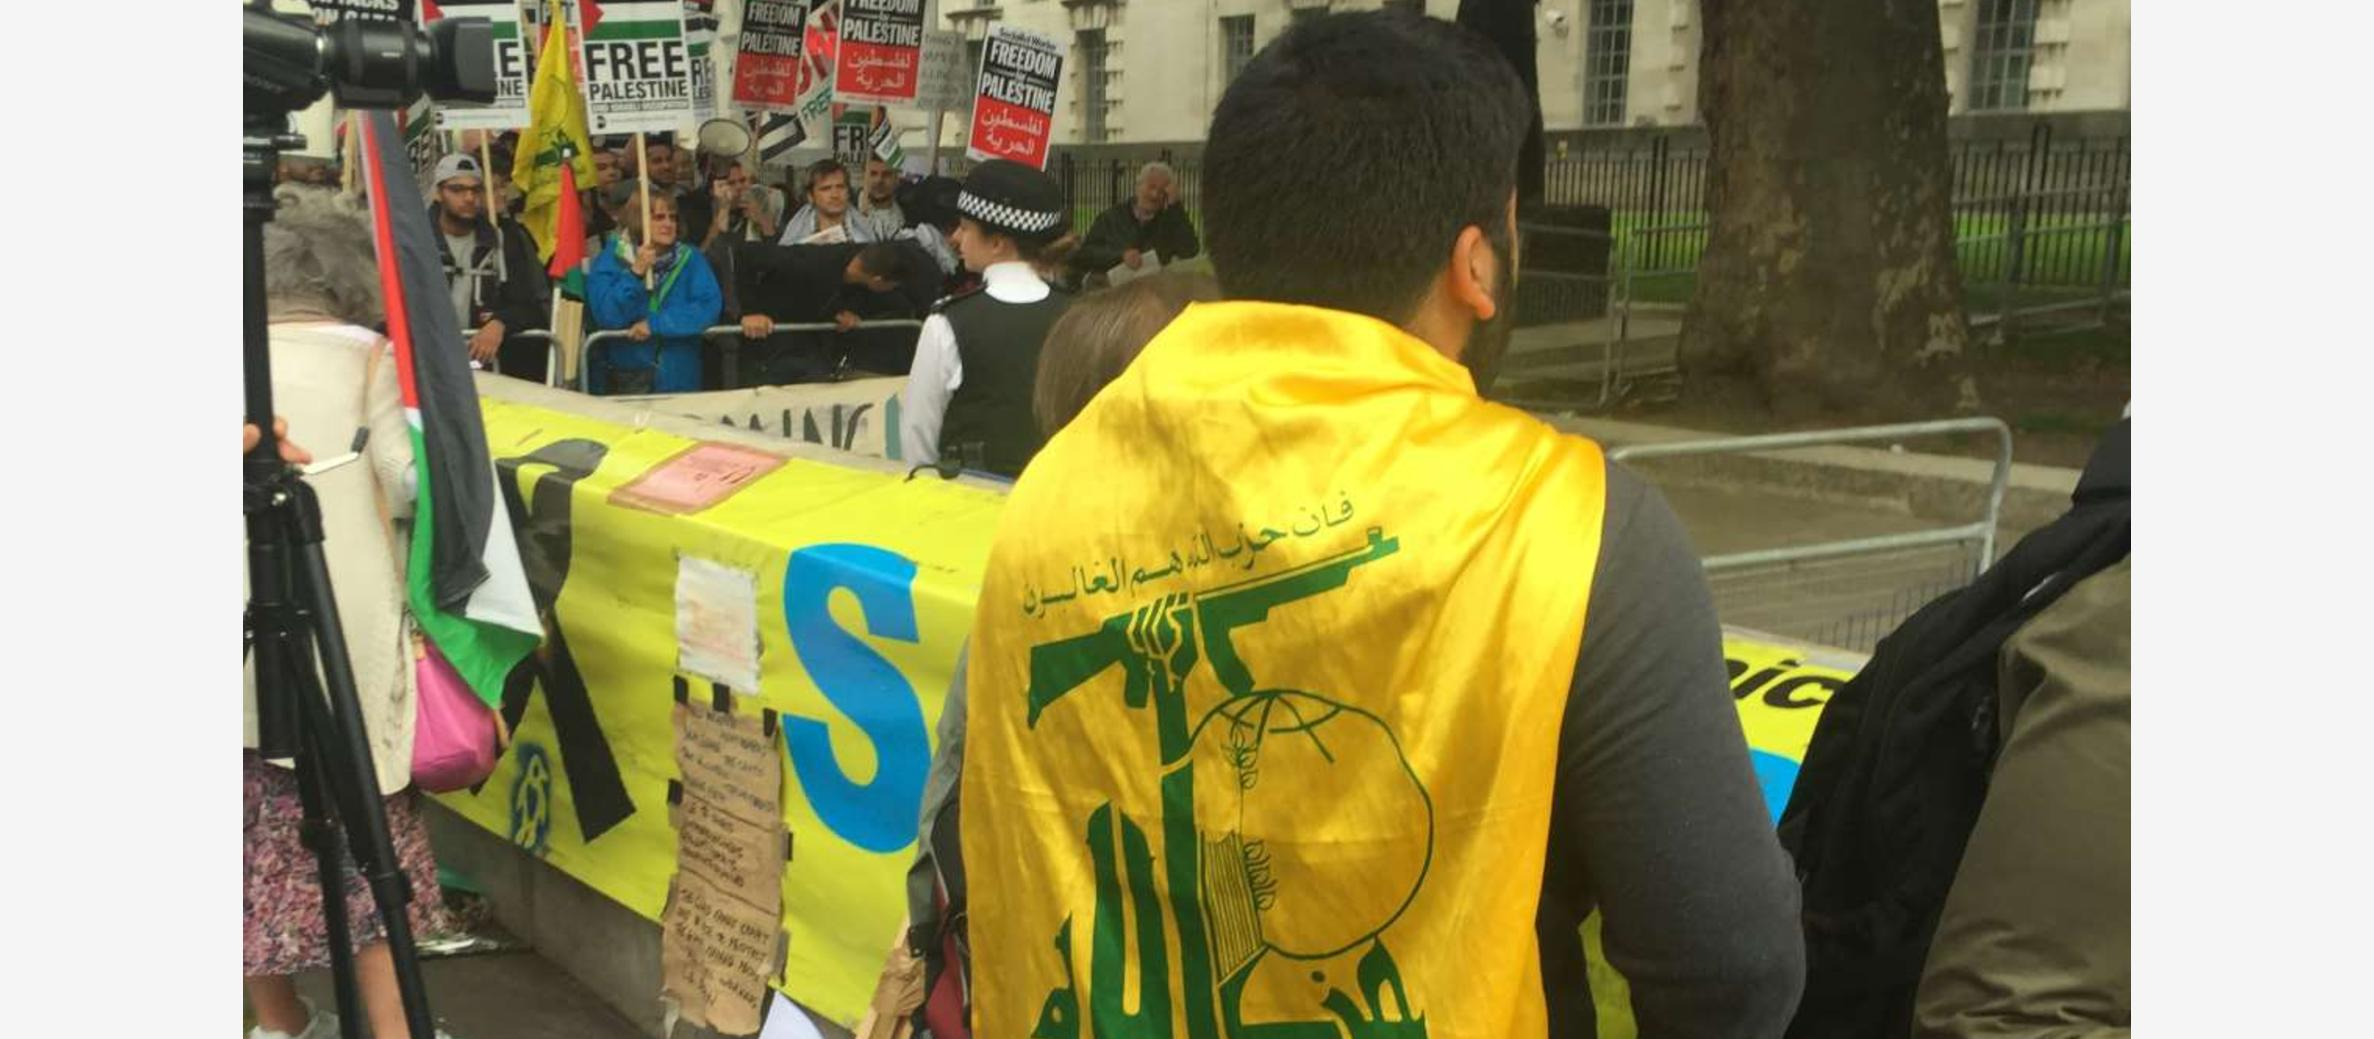 No ban on Hamas and Hezbollah flags in London, say Al Quds march organisers